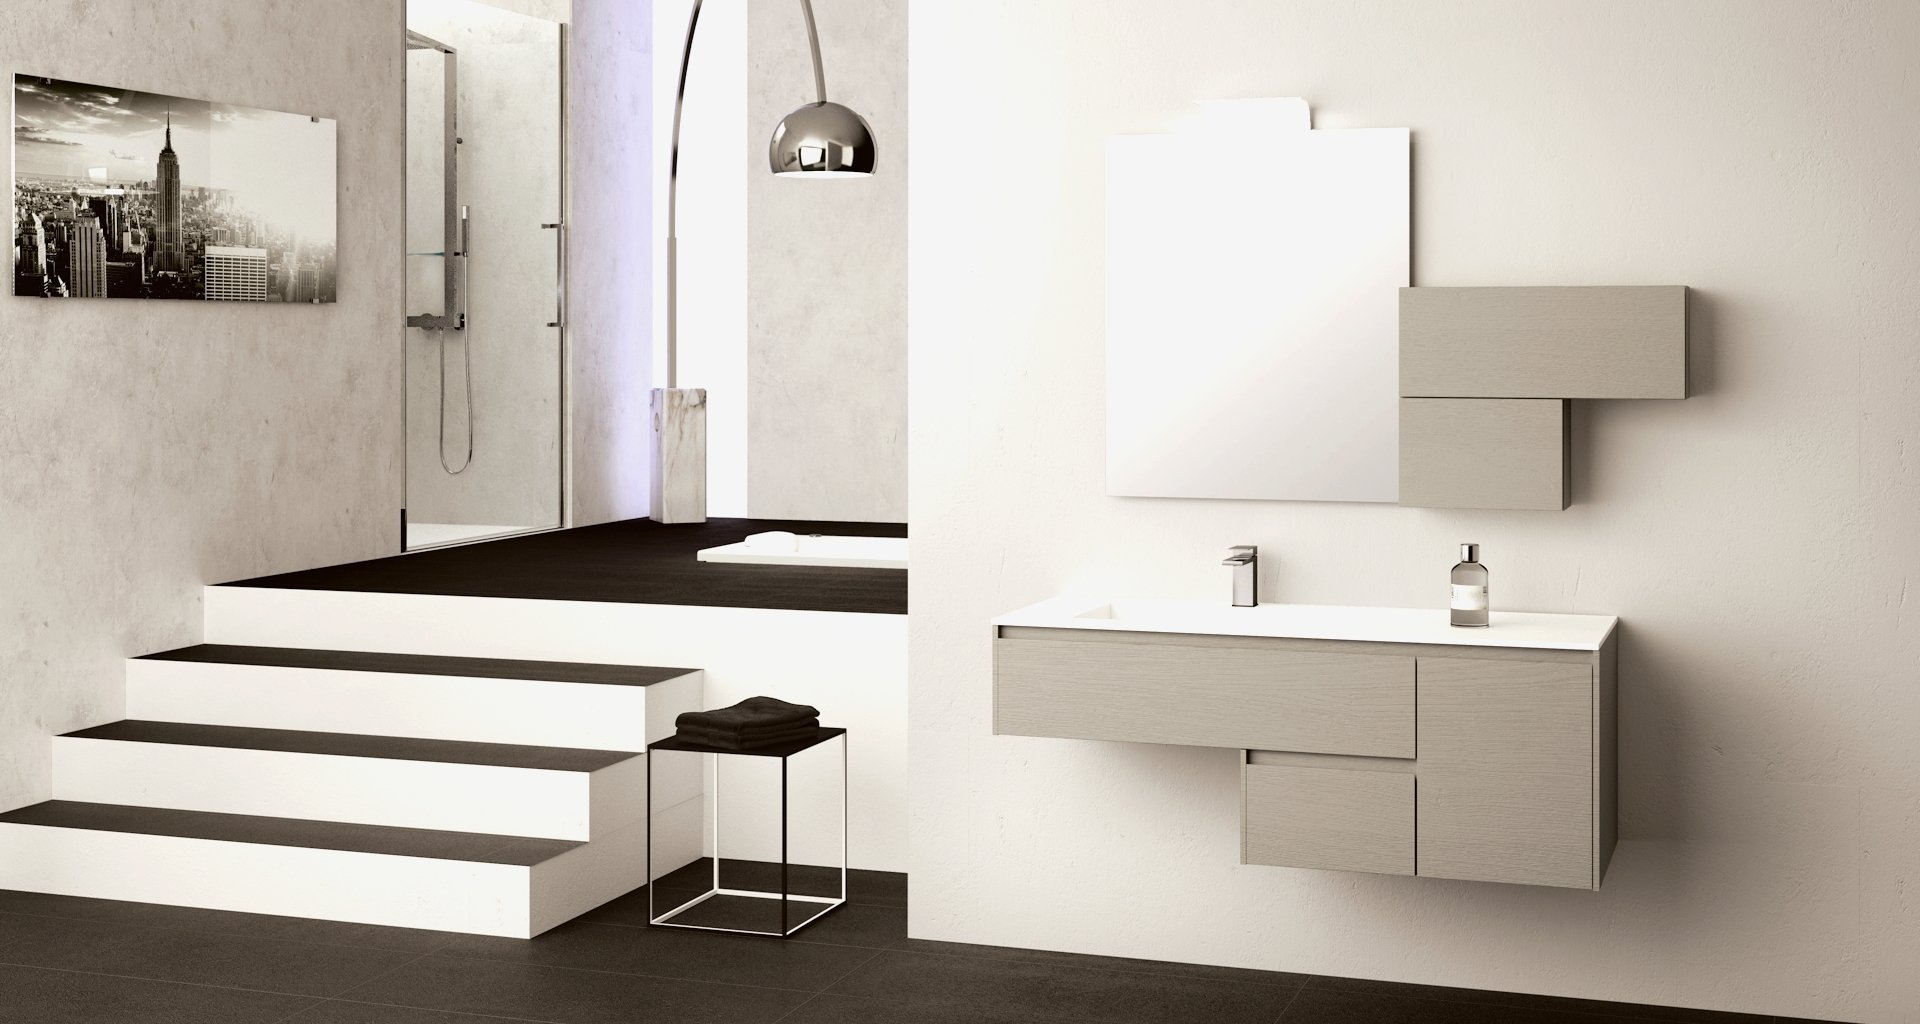 Ceramiche Outlet Roma. Outlet Ceramiche Srl With Ceramiche Outlet ...